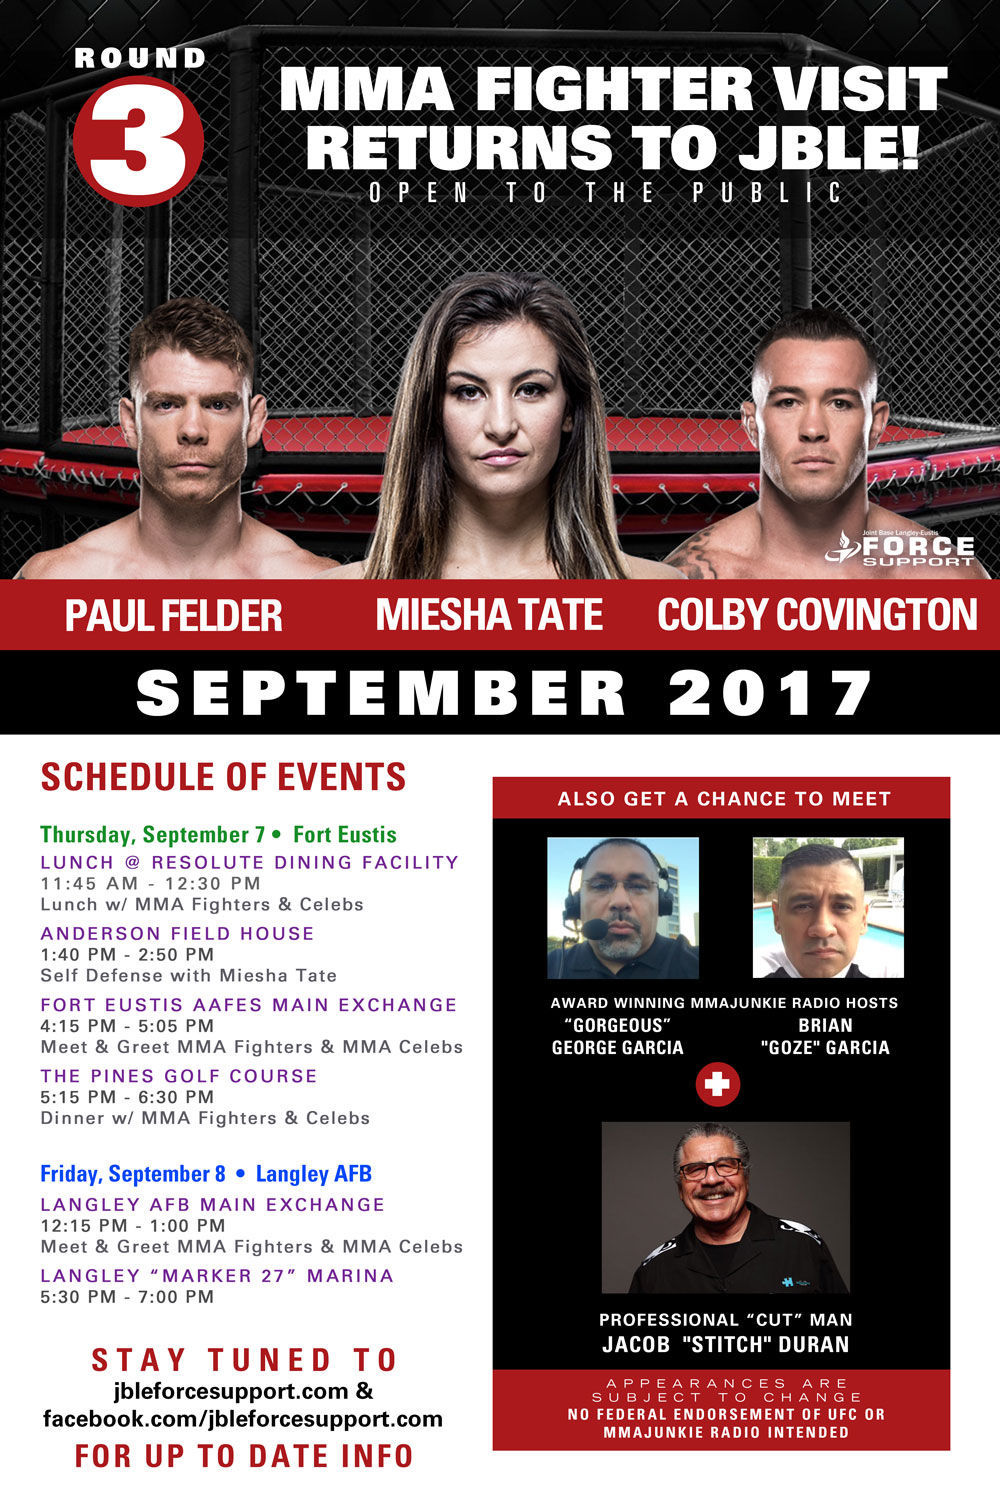 Round 3 Ufc Fighters And Mma Celebs Visit Jble Air Force News